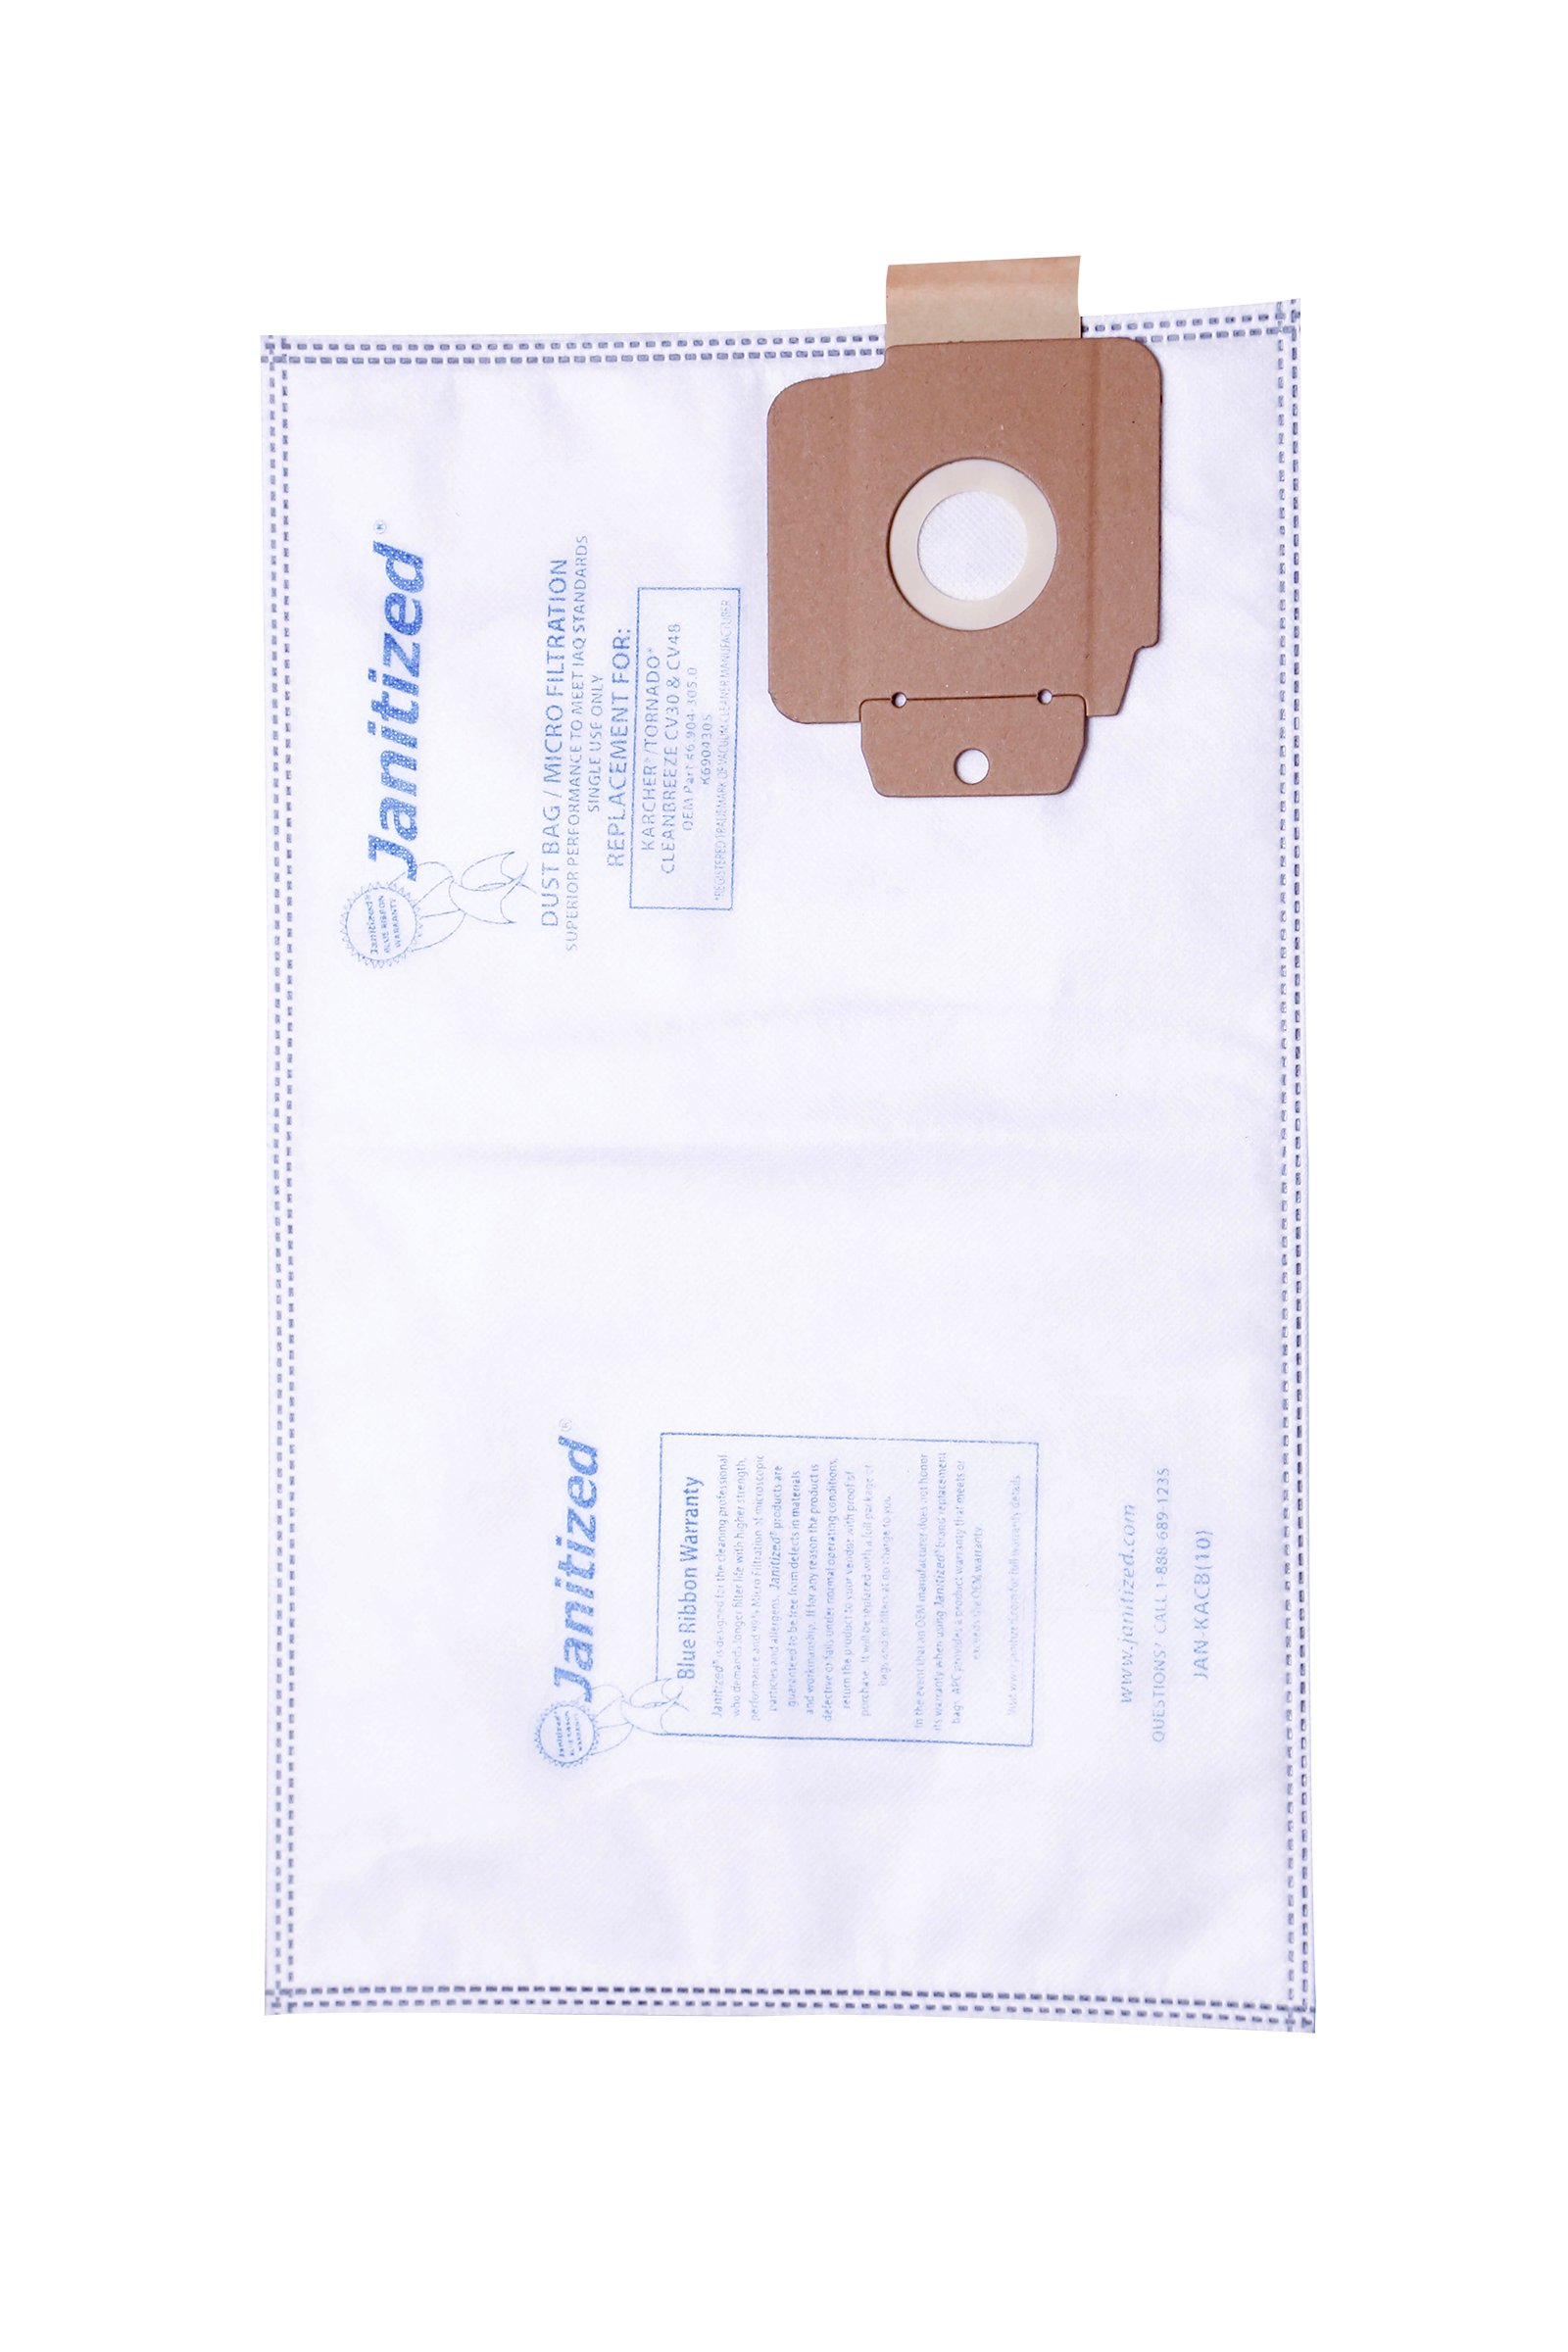 Janitized JAN-KACB(10) Premium Replacement Commercial Vacuum Paper Bag for Karcher/Tornado, CleanBreeze Vacuum Cleaners, OEM#6.904-305.0, K6904305 (Pack of 10)